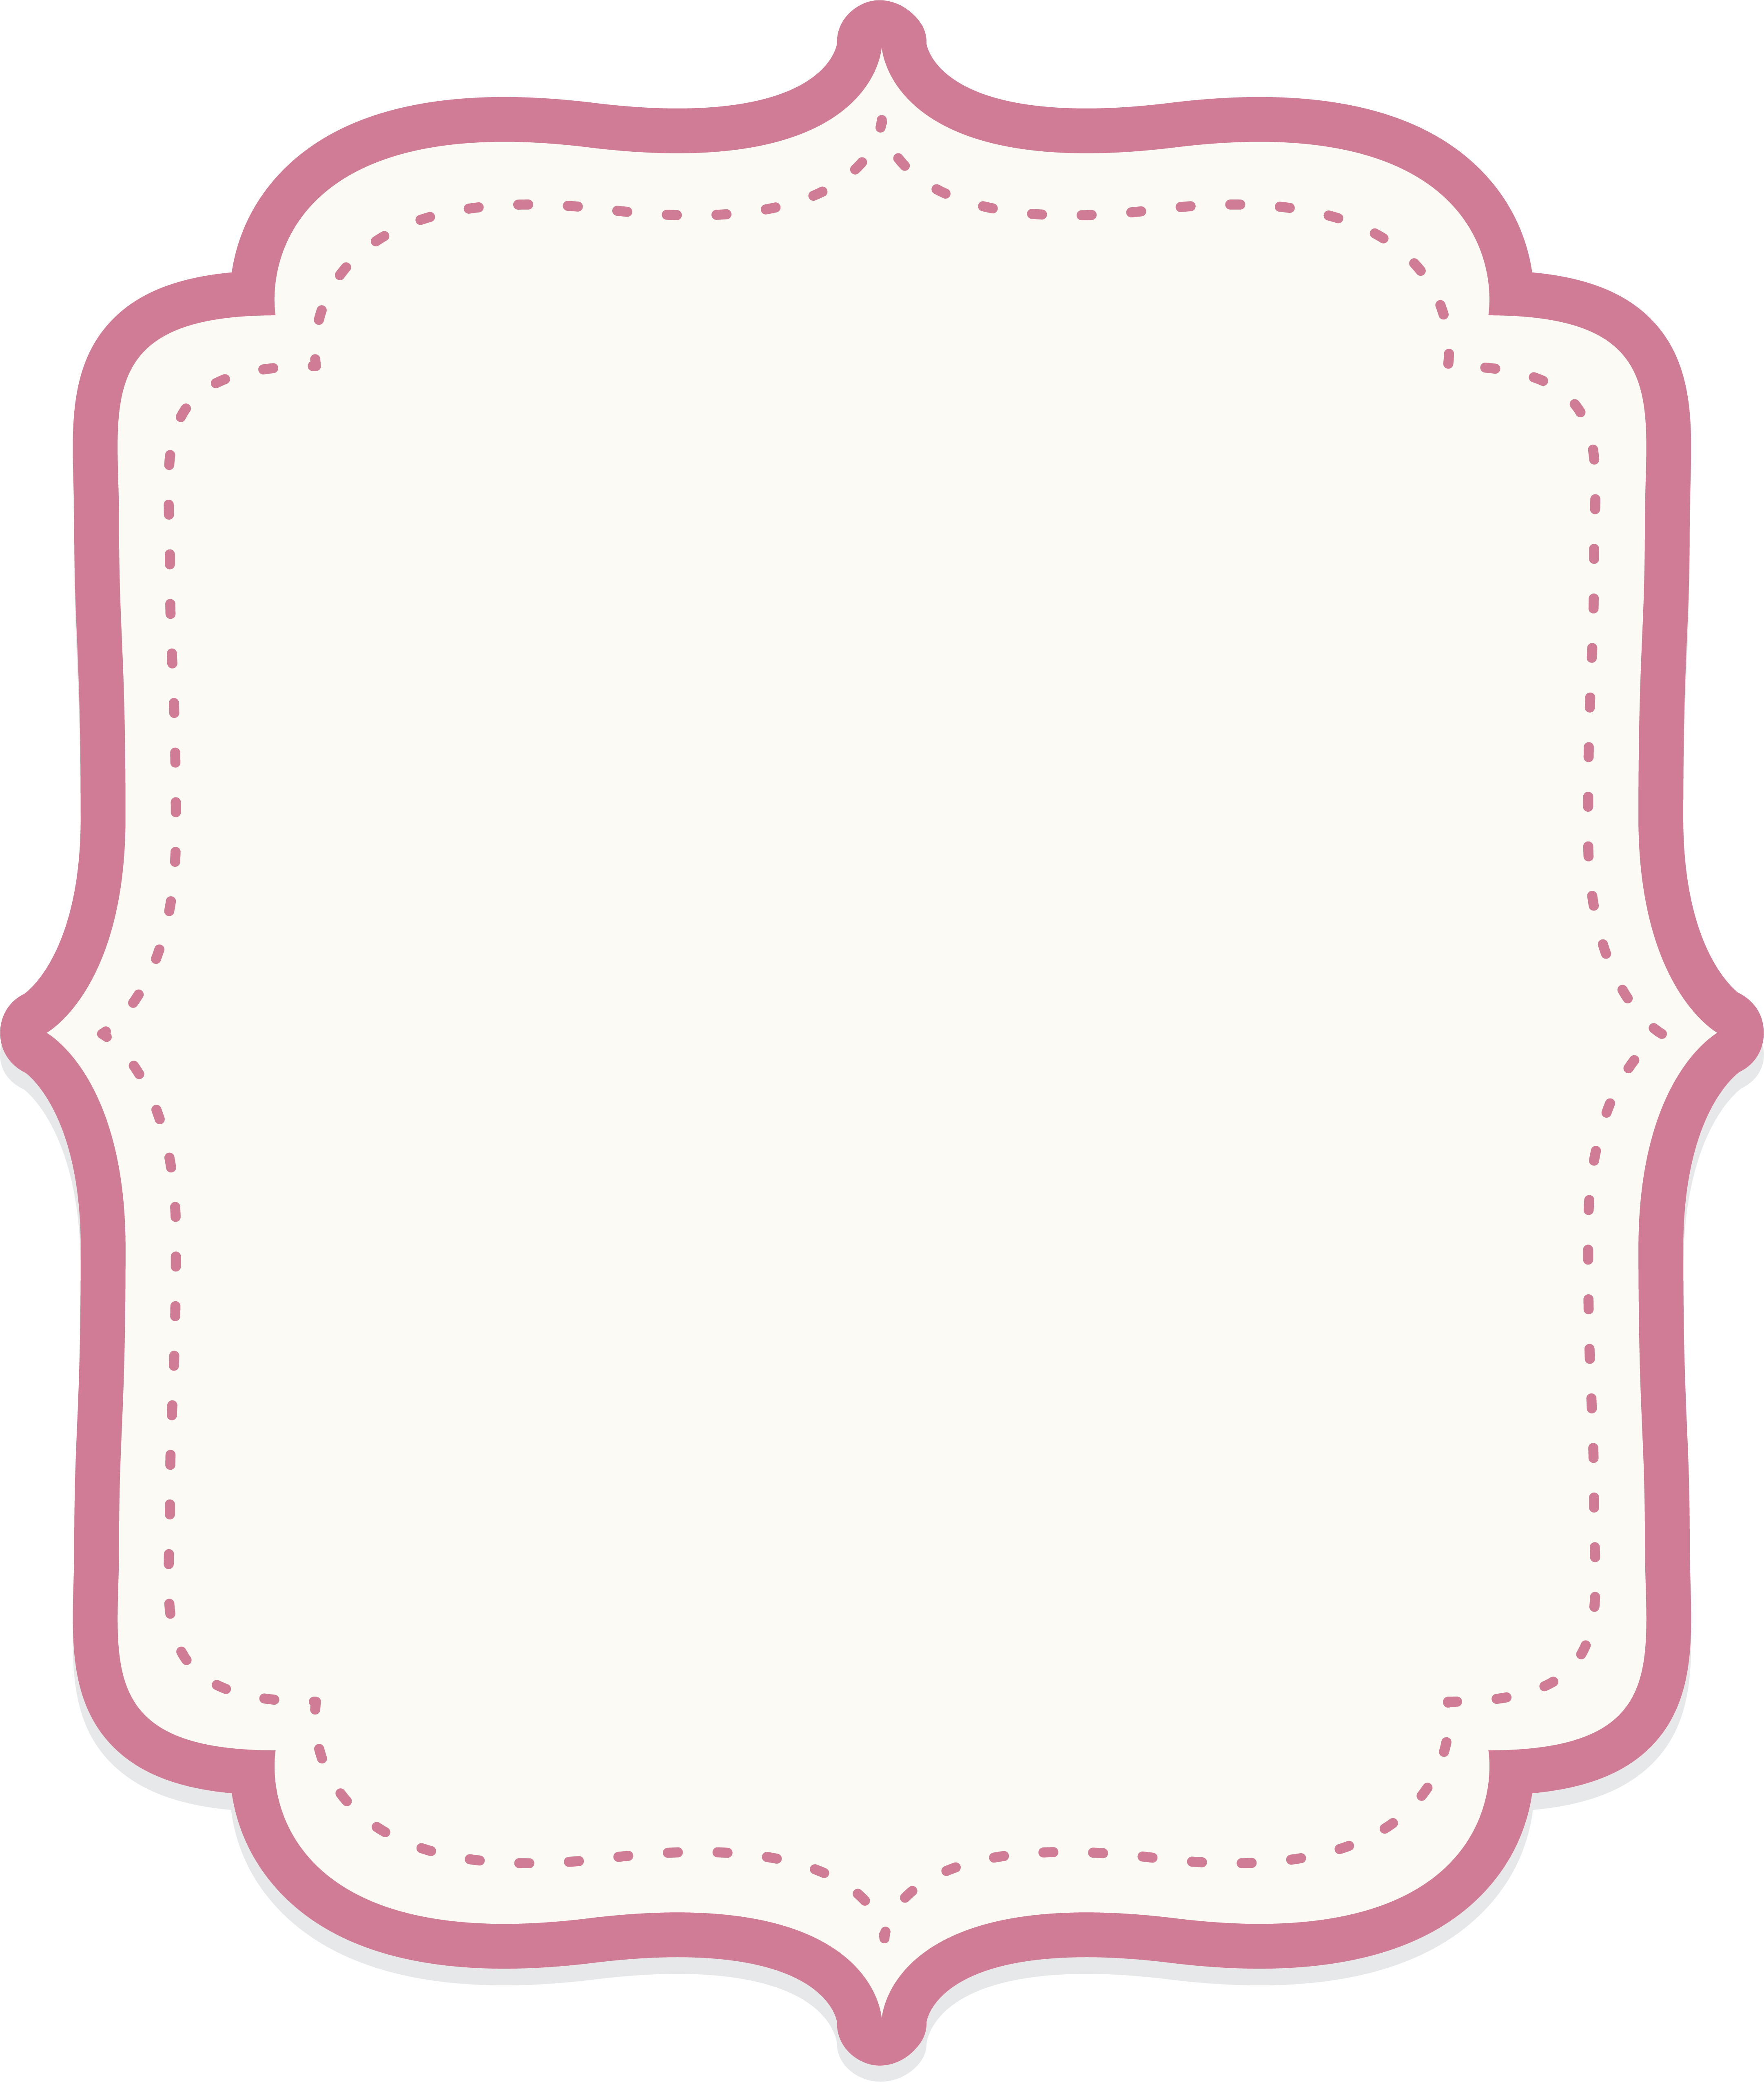 Baby border png. Icon cute powder text